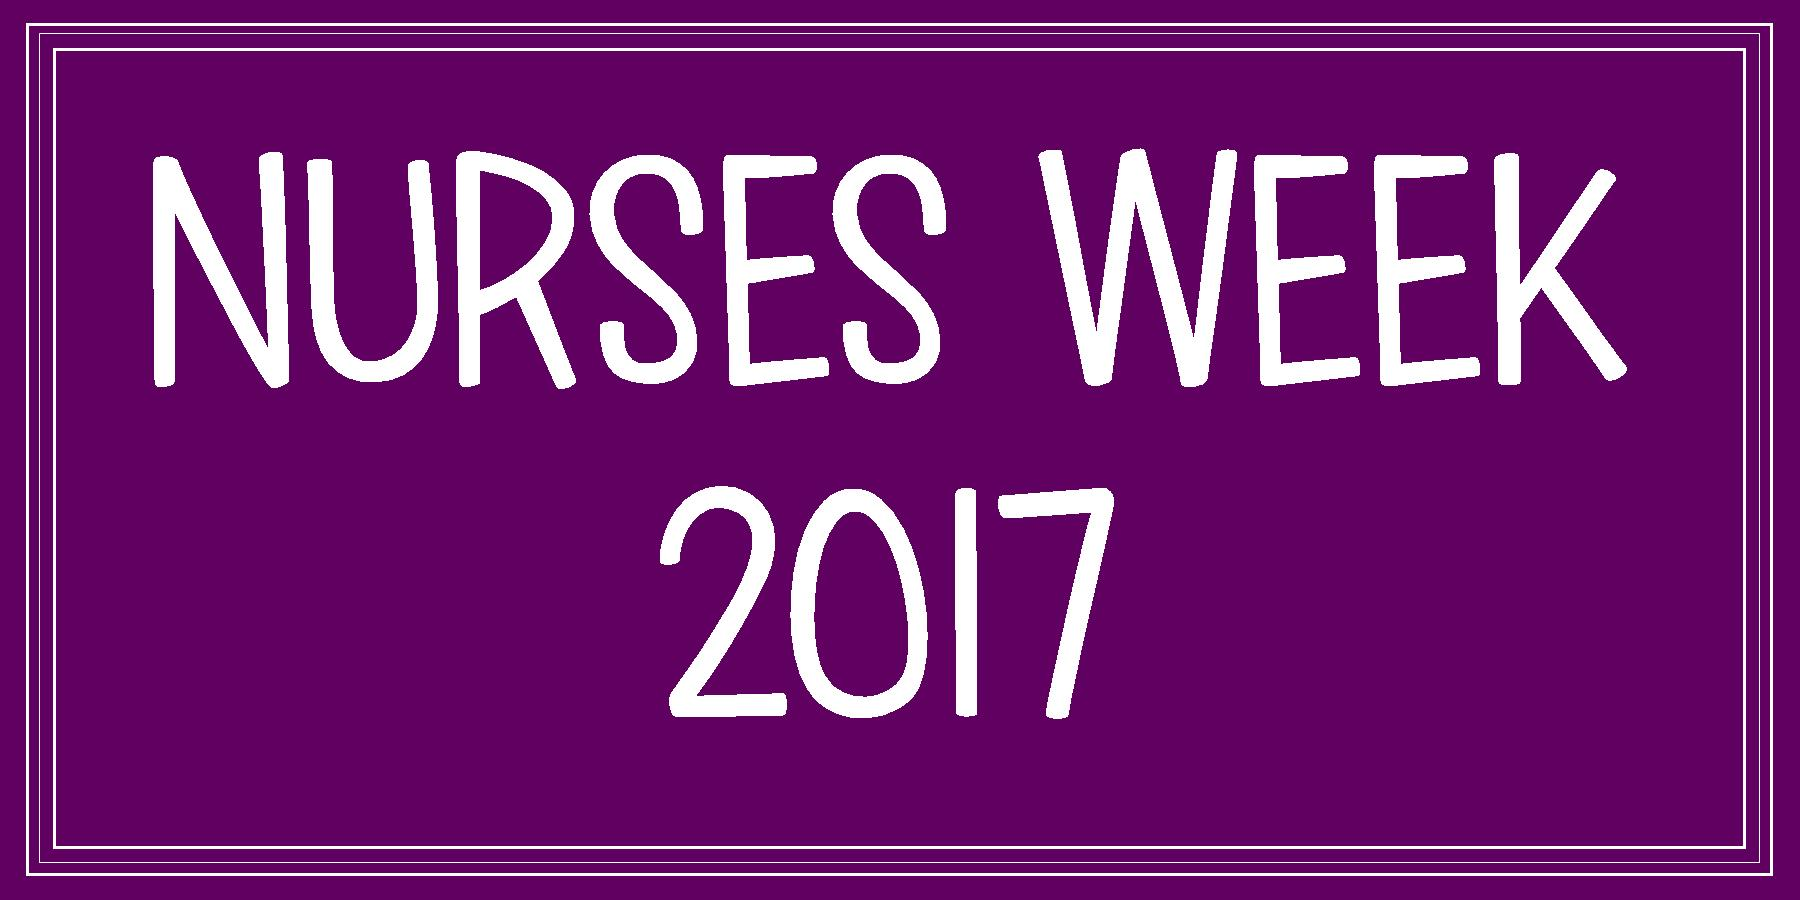 Check out our Nurses Week 2017 events!